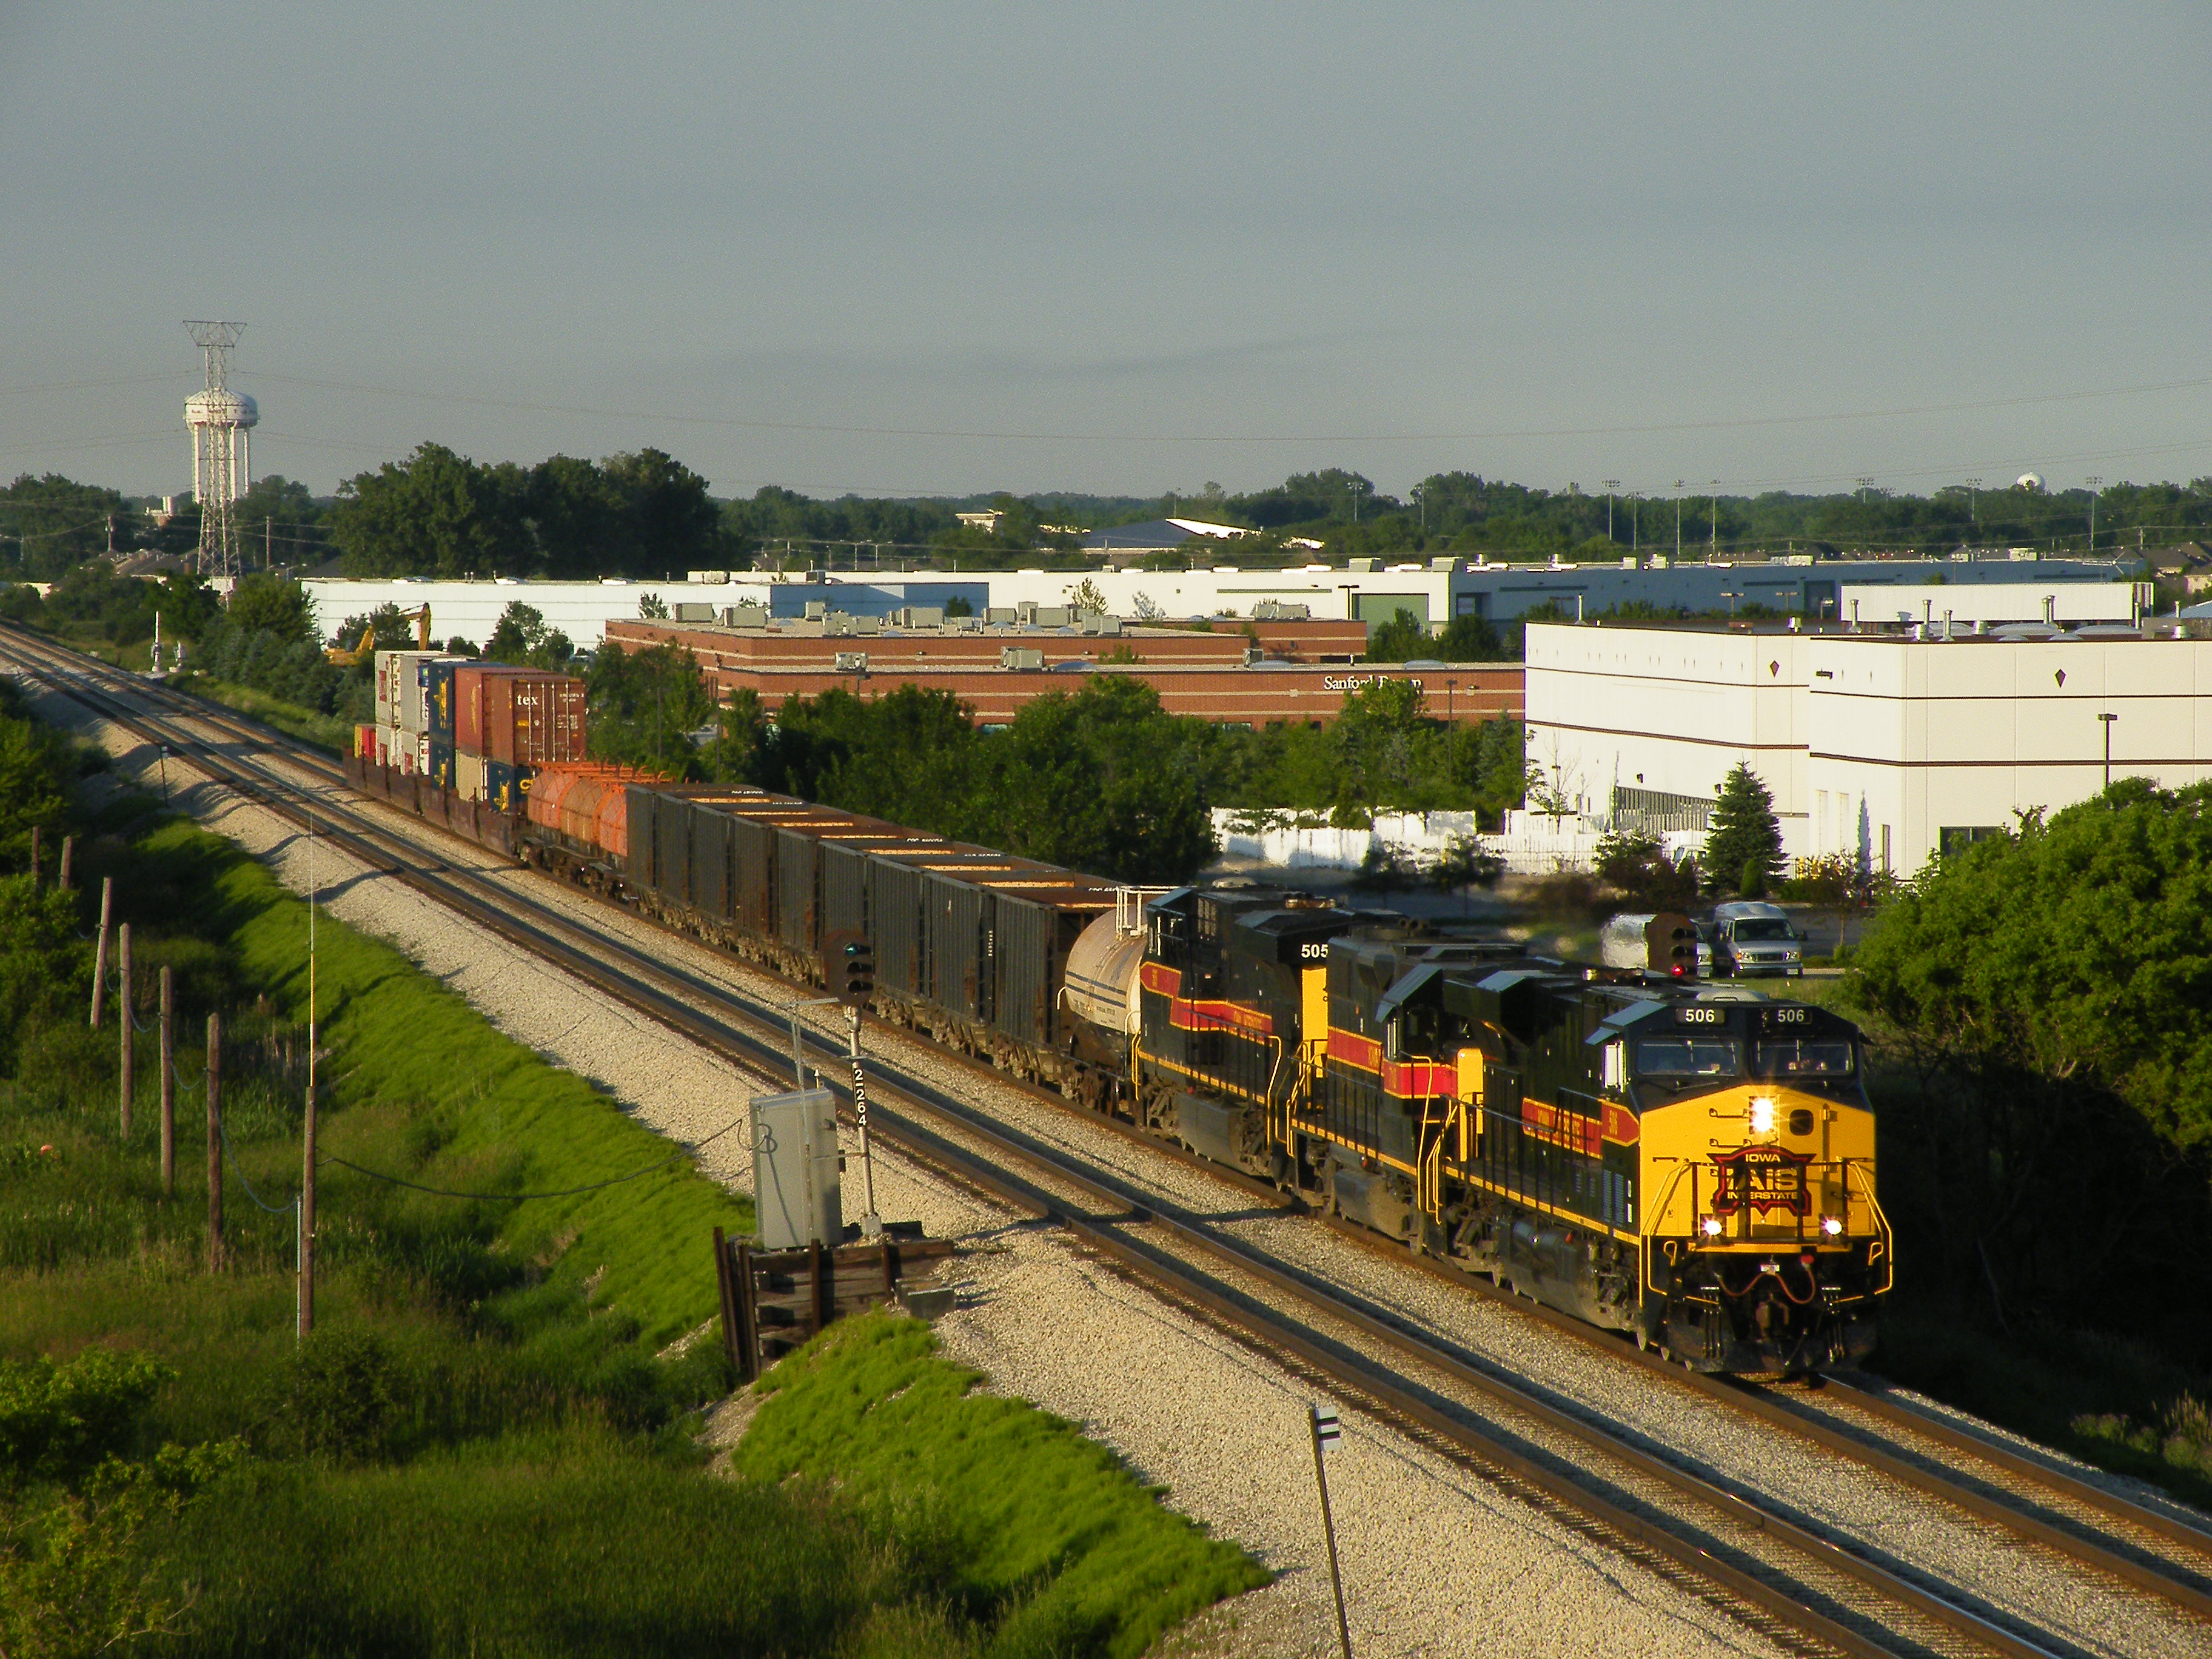 As viewed from I-80, Iowa 506 leads 710 and 505 on a comically short BICB through Tinley Park. I believe the train was missing its block of cars from the IHB, i.e. ethanol mtys and Crandic traffic. 06-07-10